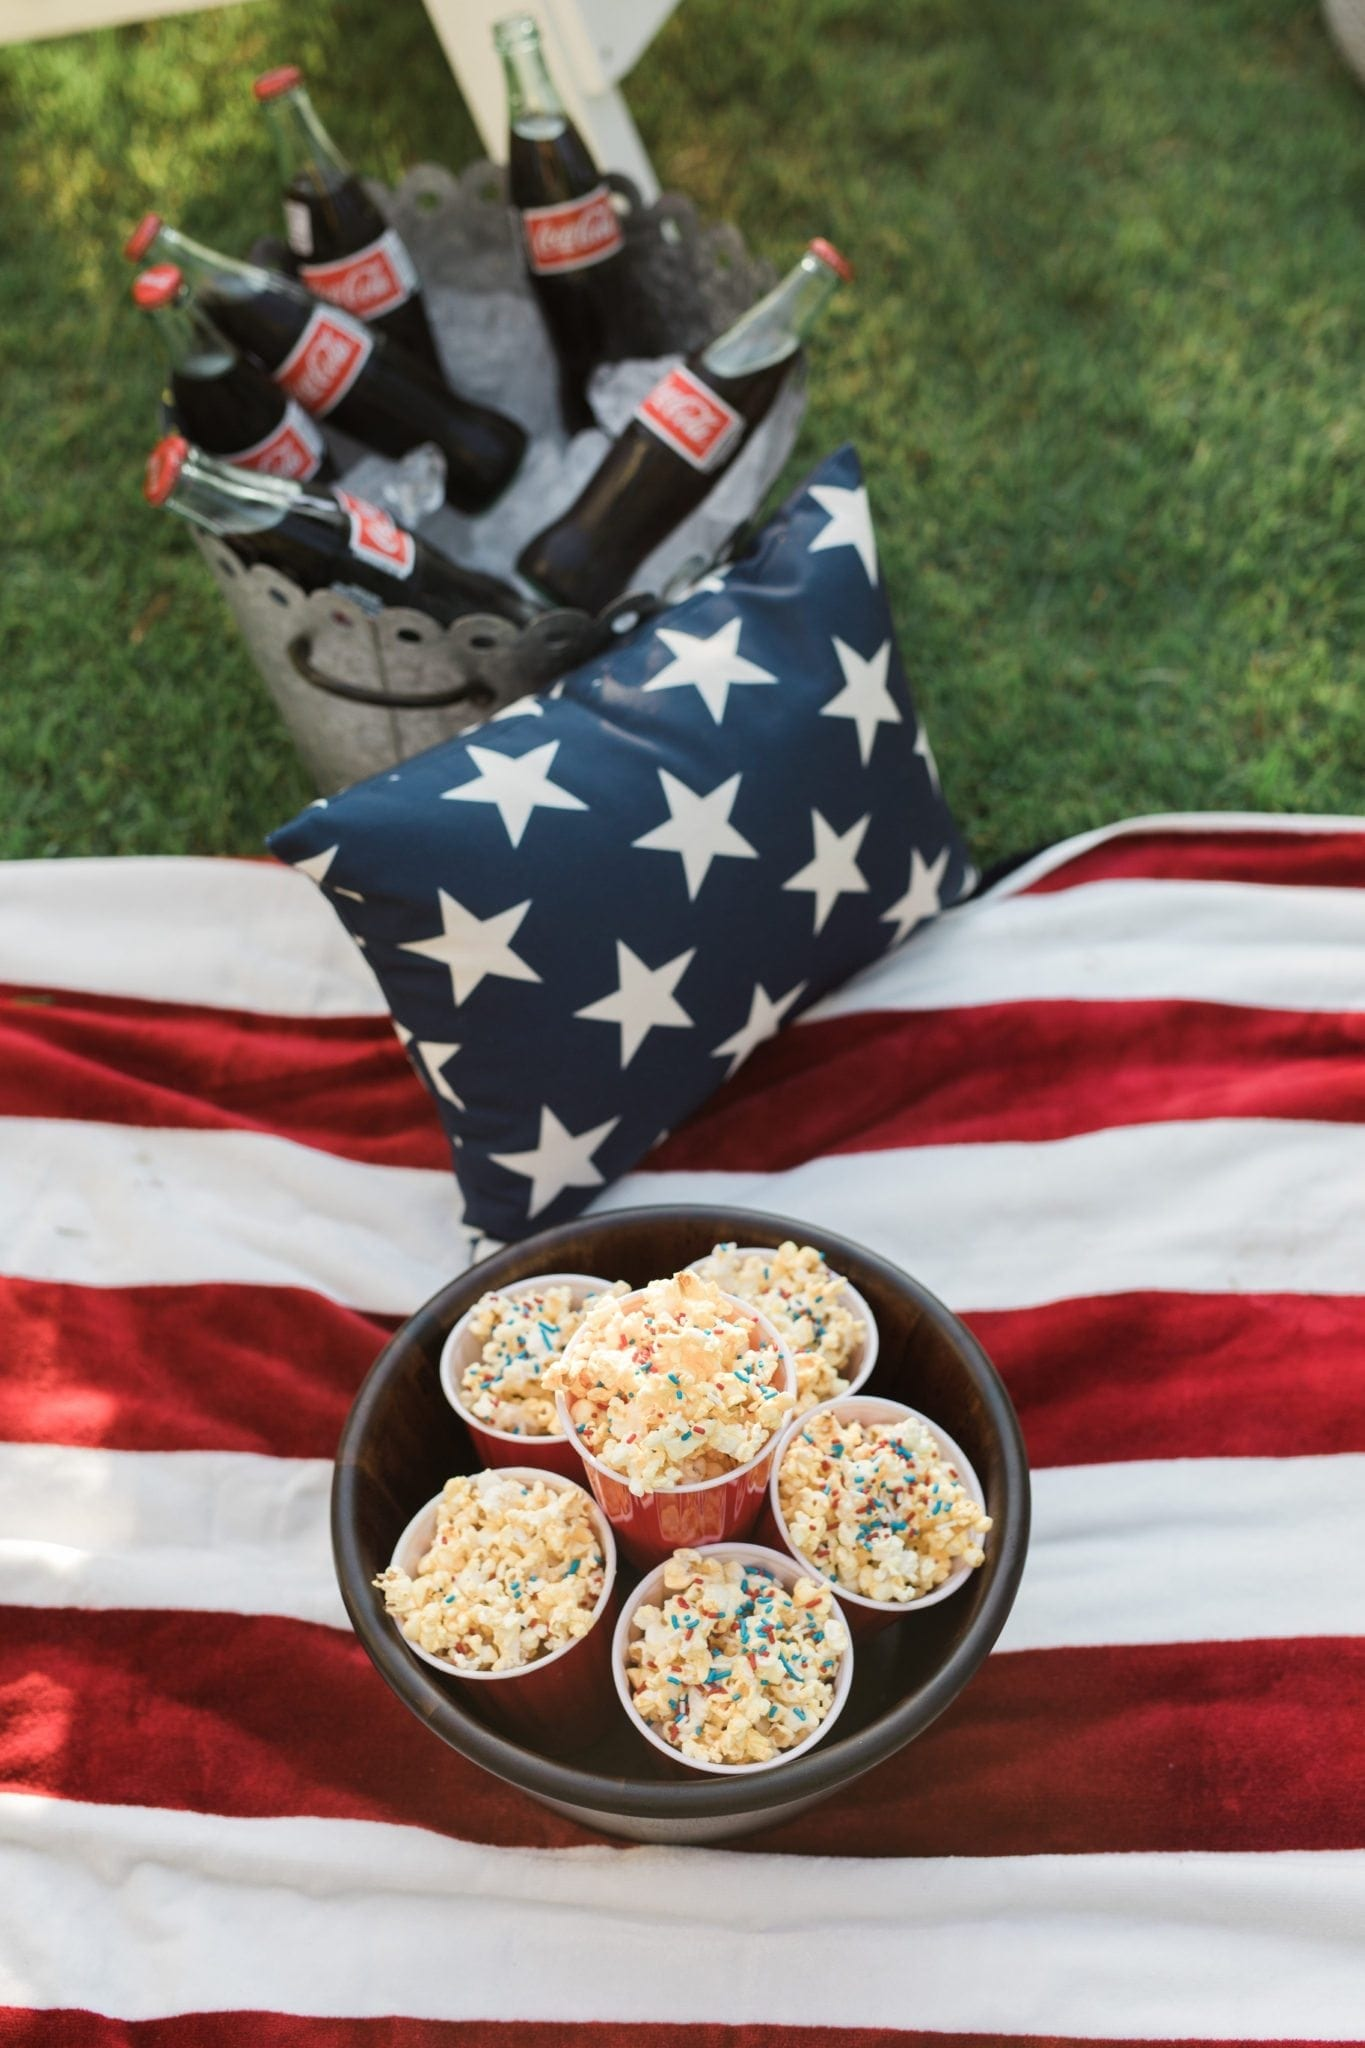 Popcorn with white chocolate and red white and blue sprinkles.